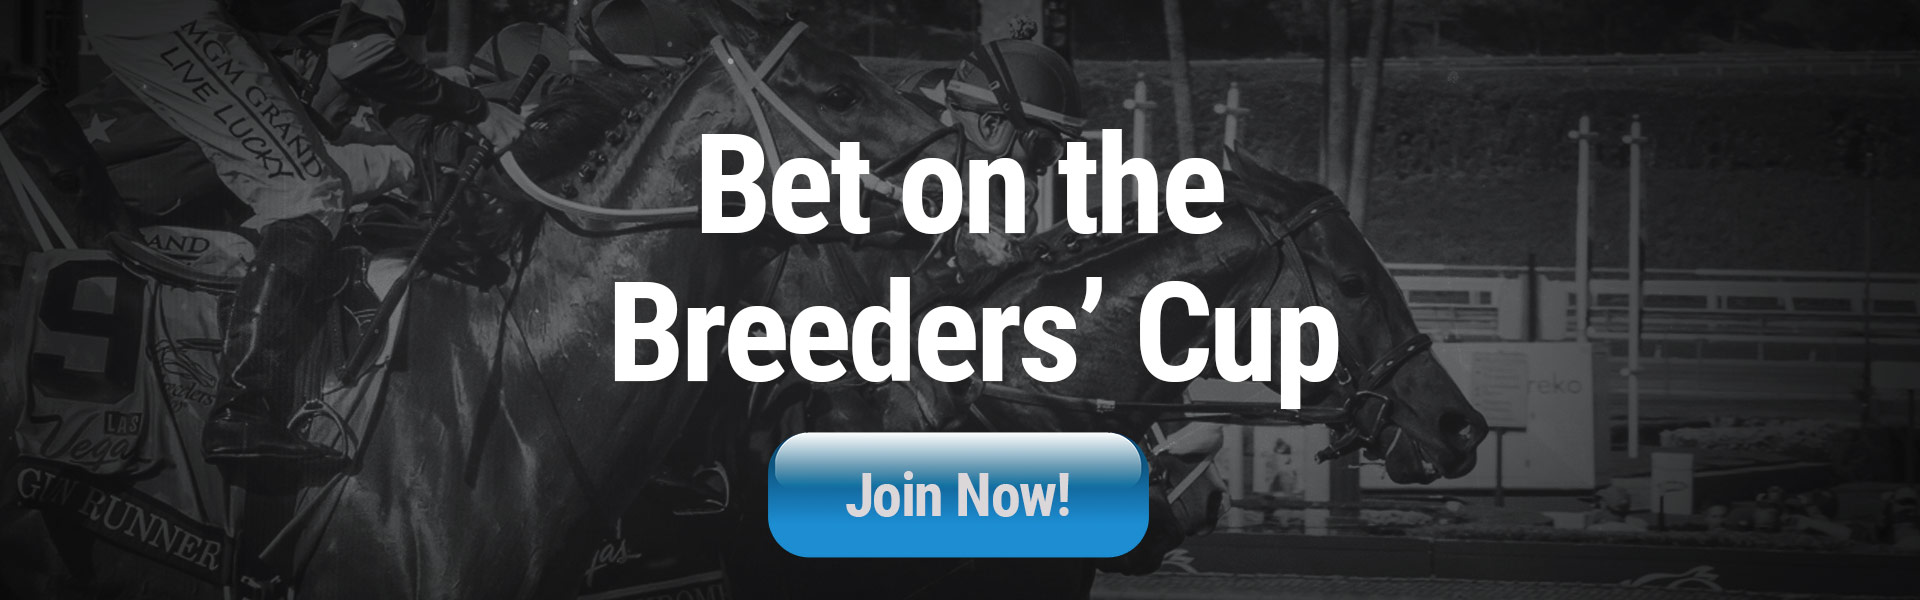 Online Horse Betting Bet On Breeders Cup Juvenile Fillies